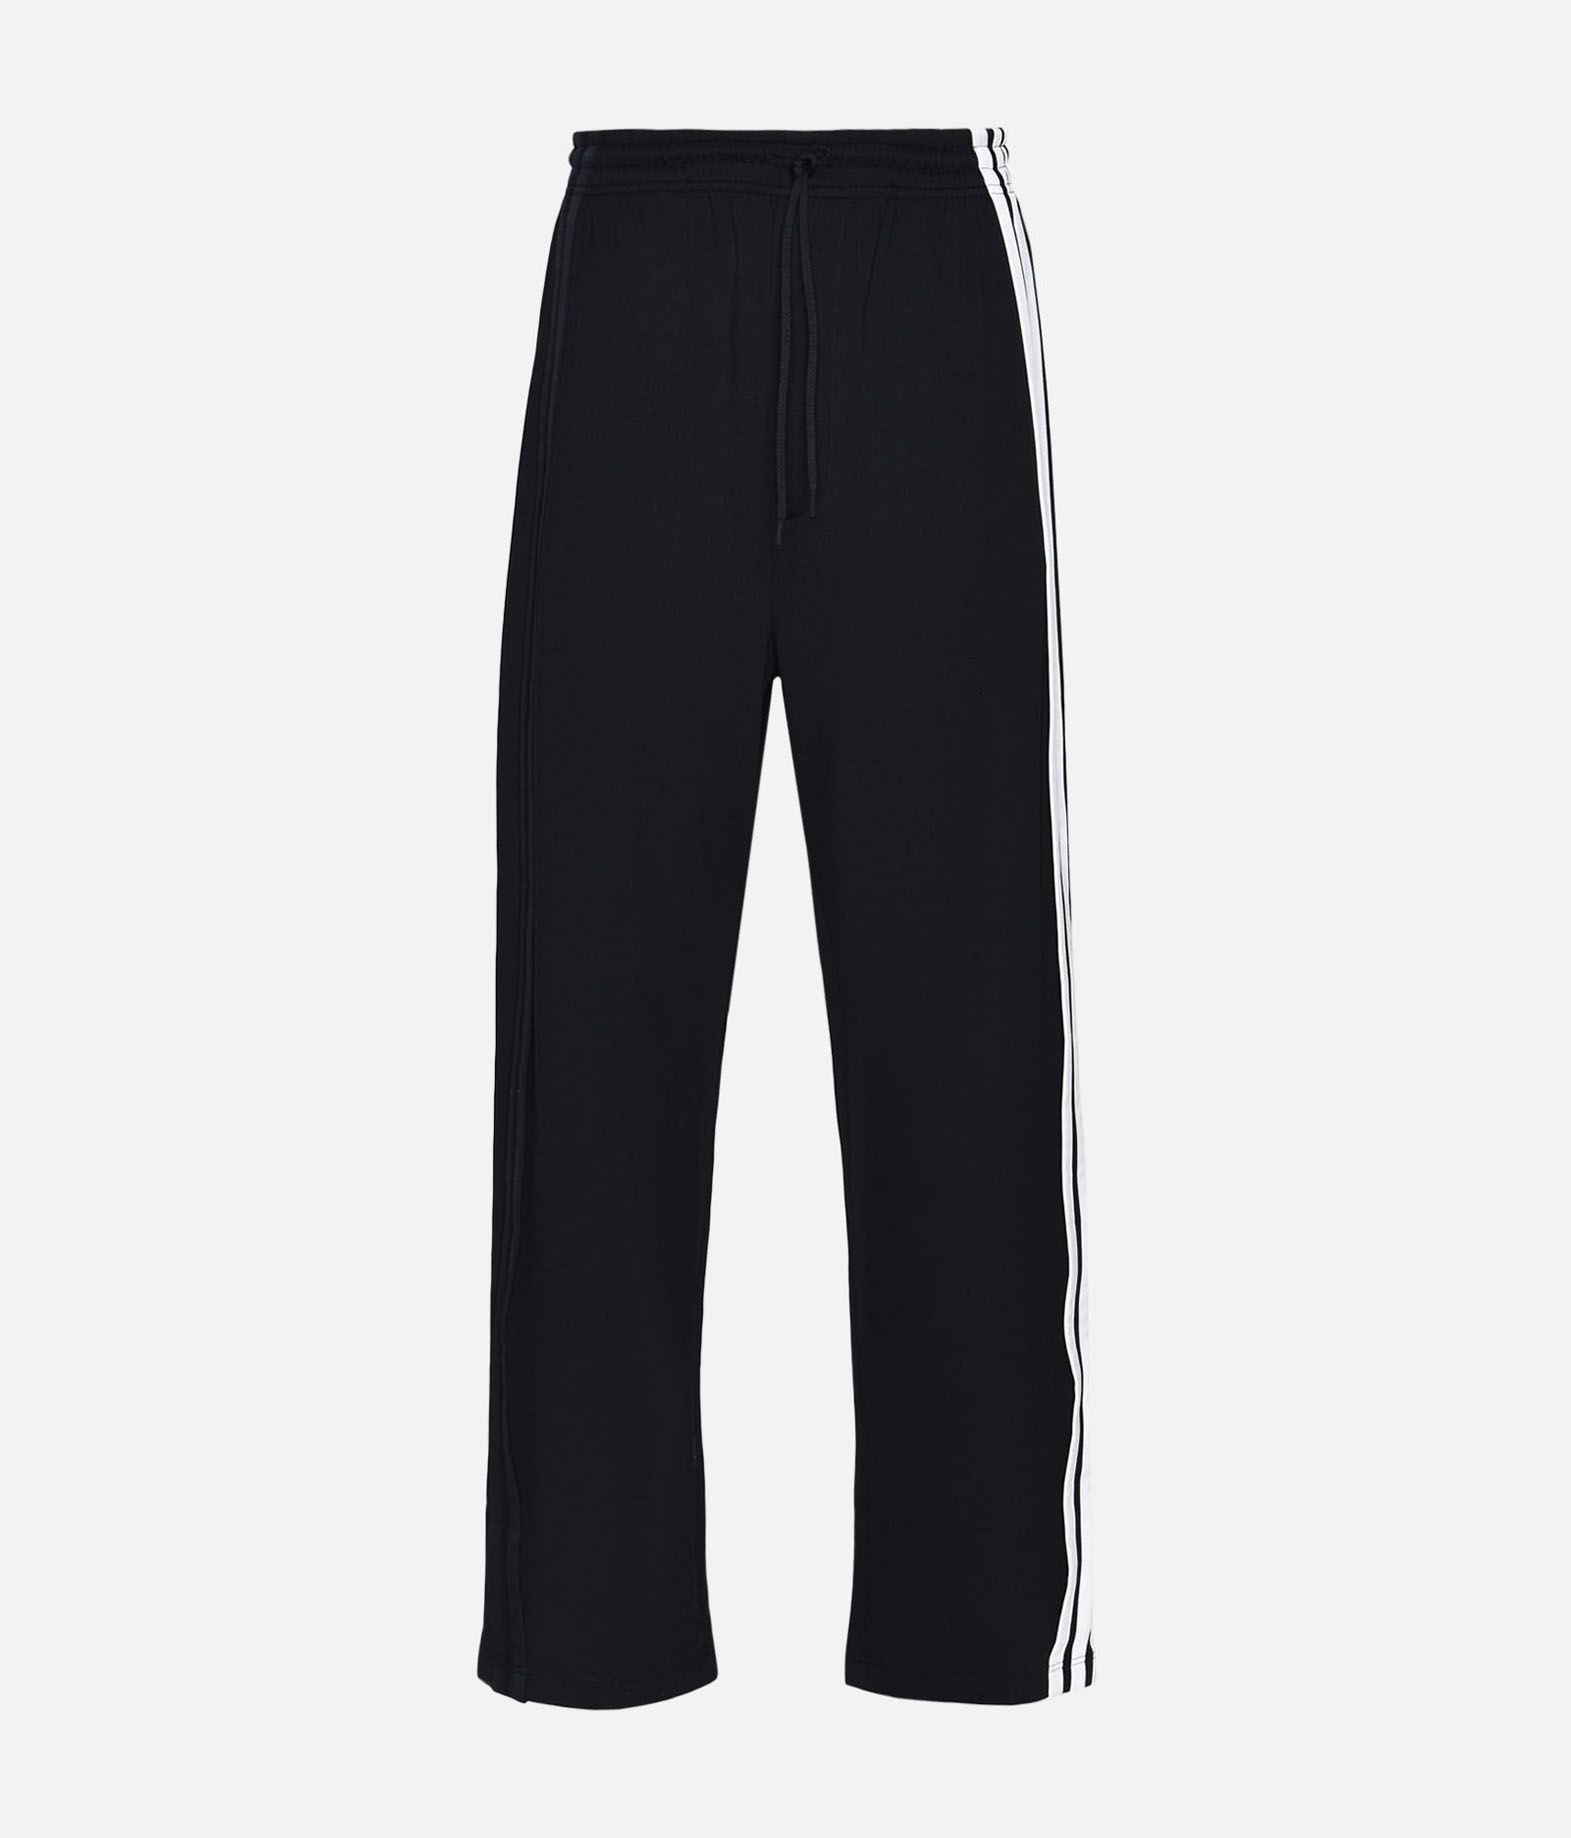 Y-3 Y-3 3-Stripes Selvedge Wide Pants Tracksuit bottoms Man f